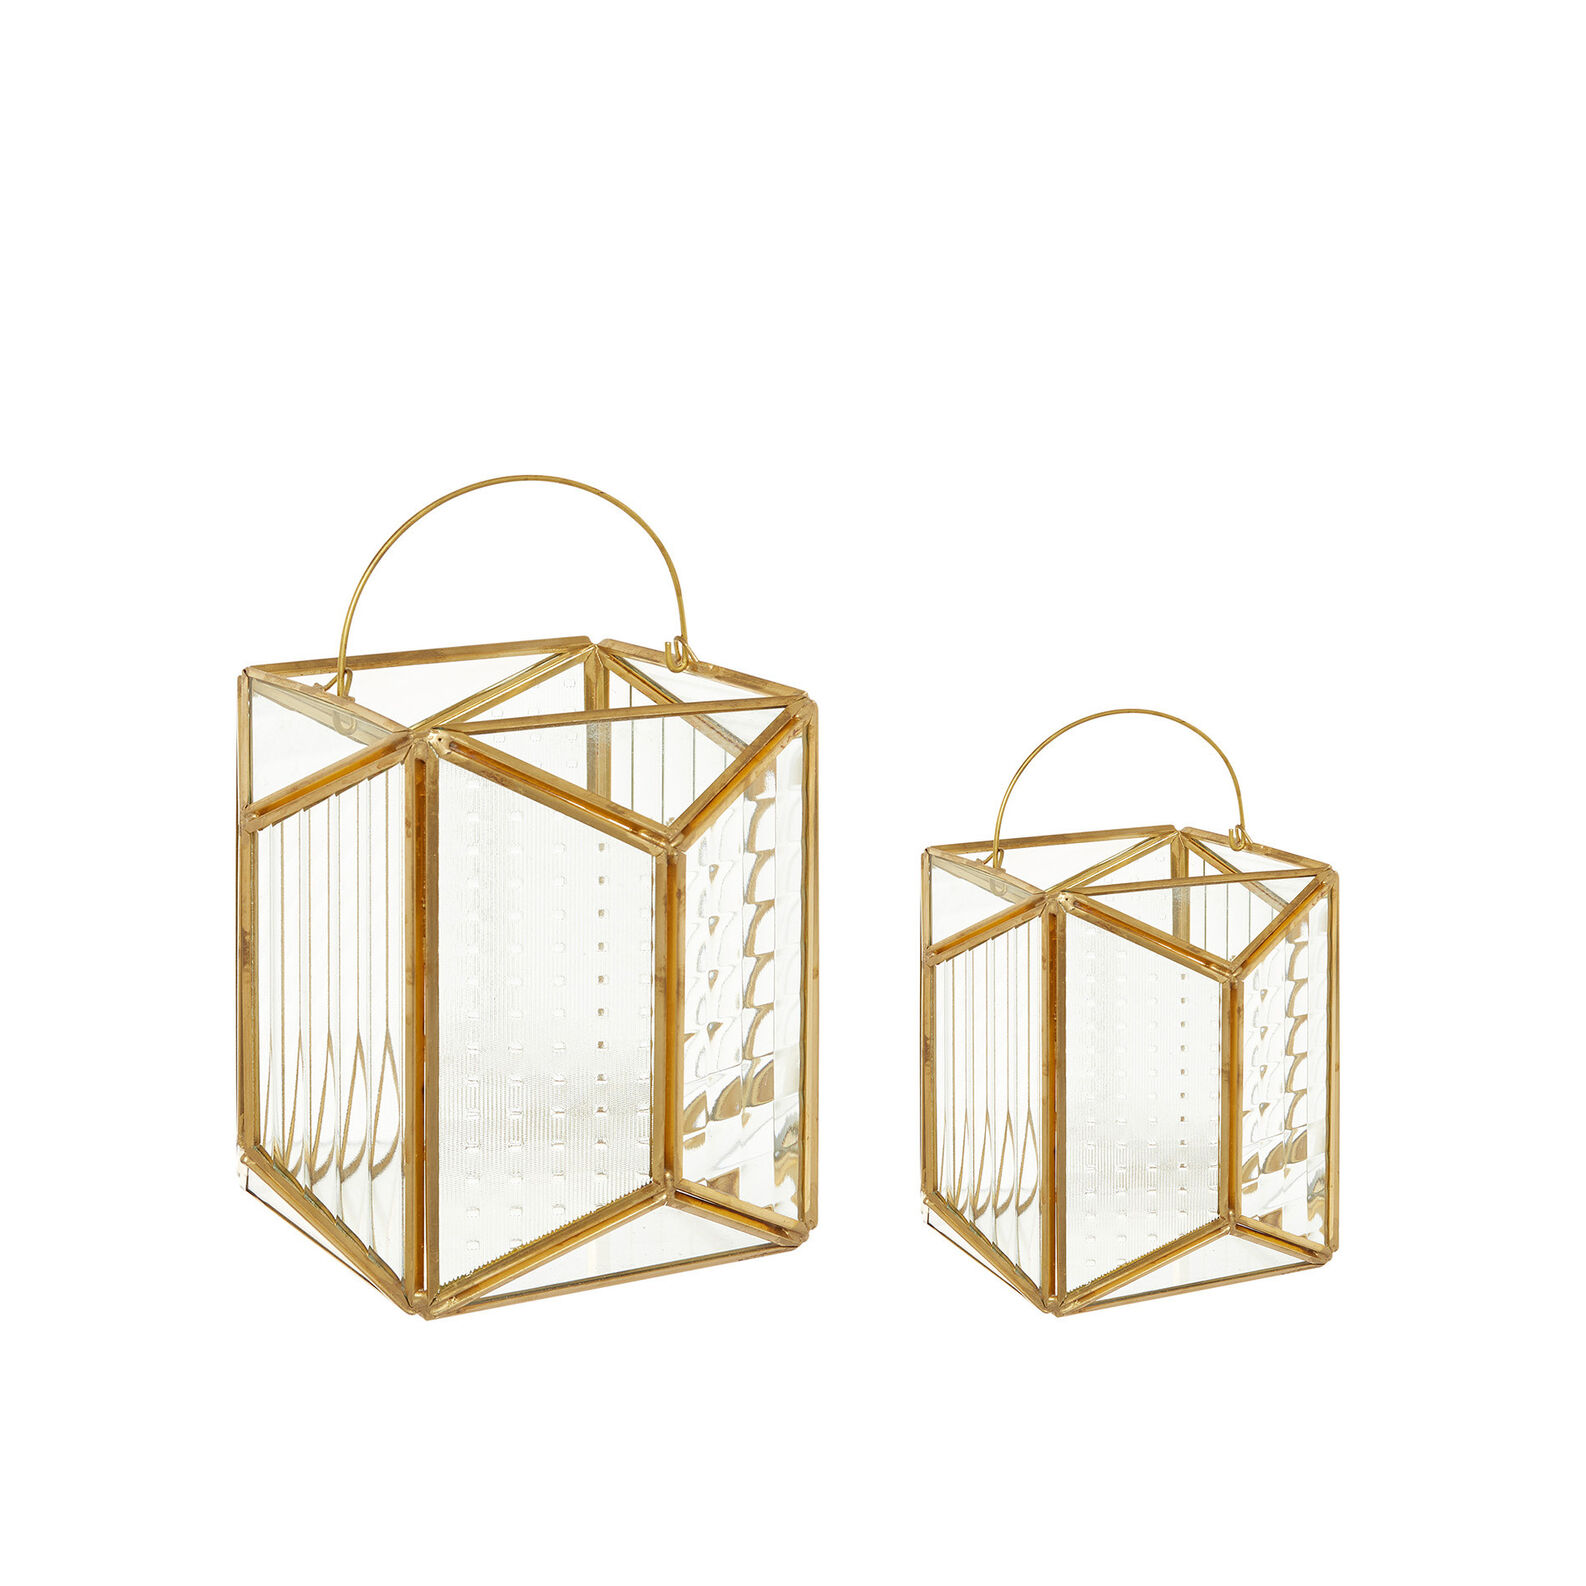 Lantern in metal and glass